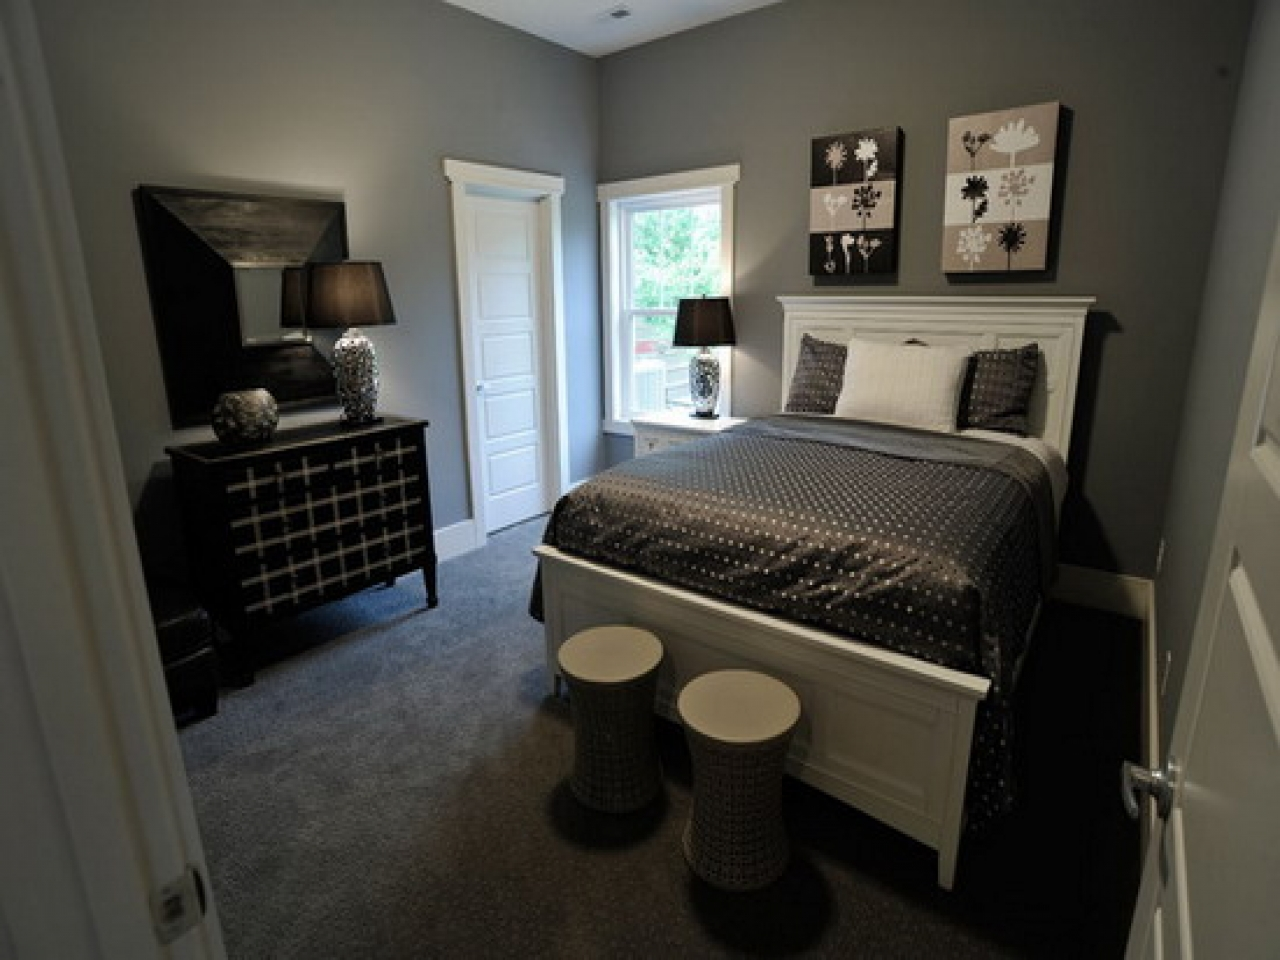 Grey Walls Bedroom Tumblr The Image Kid Gray Wall Decoration Bedrooms For Teenage Girls Boho And White Ideas Black Hipster Blue Apppie Org